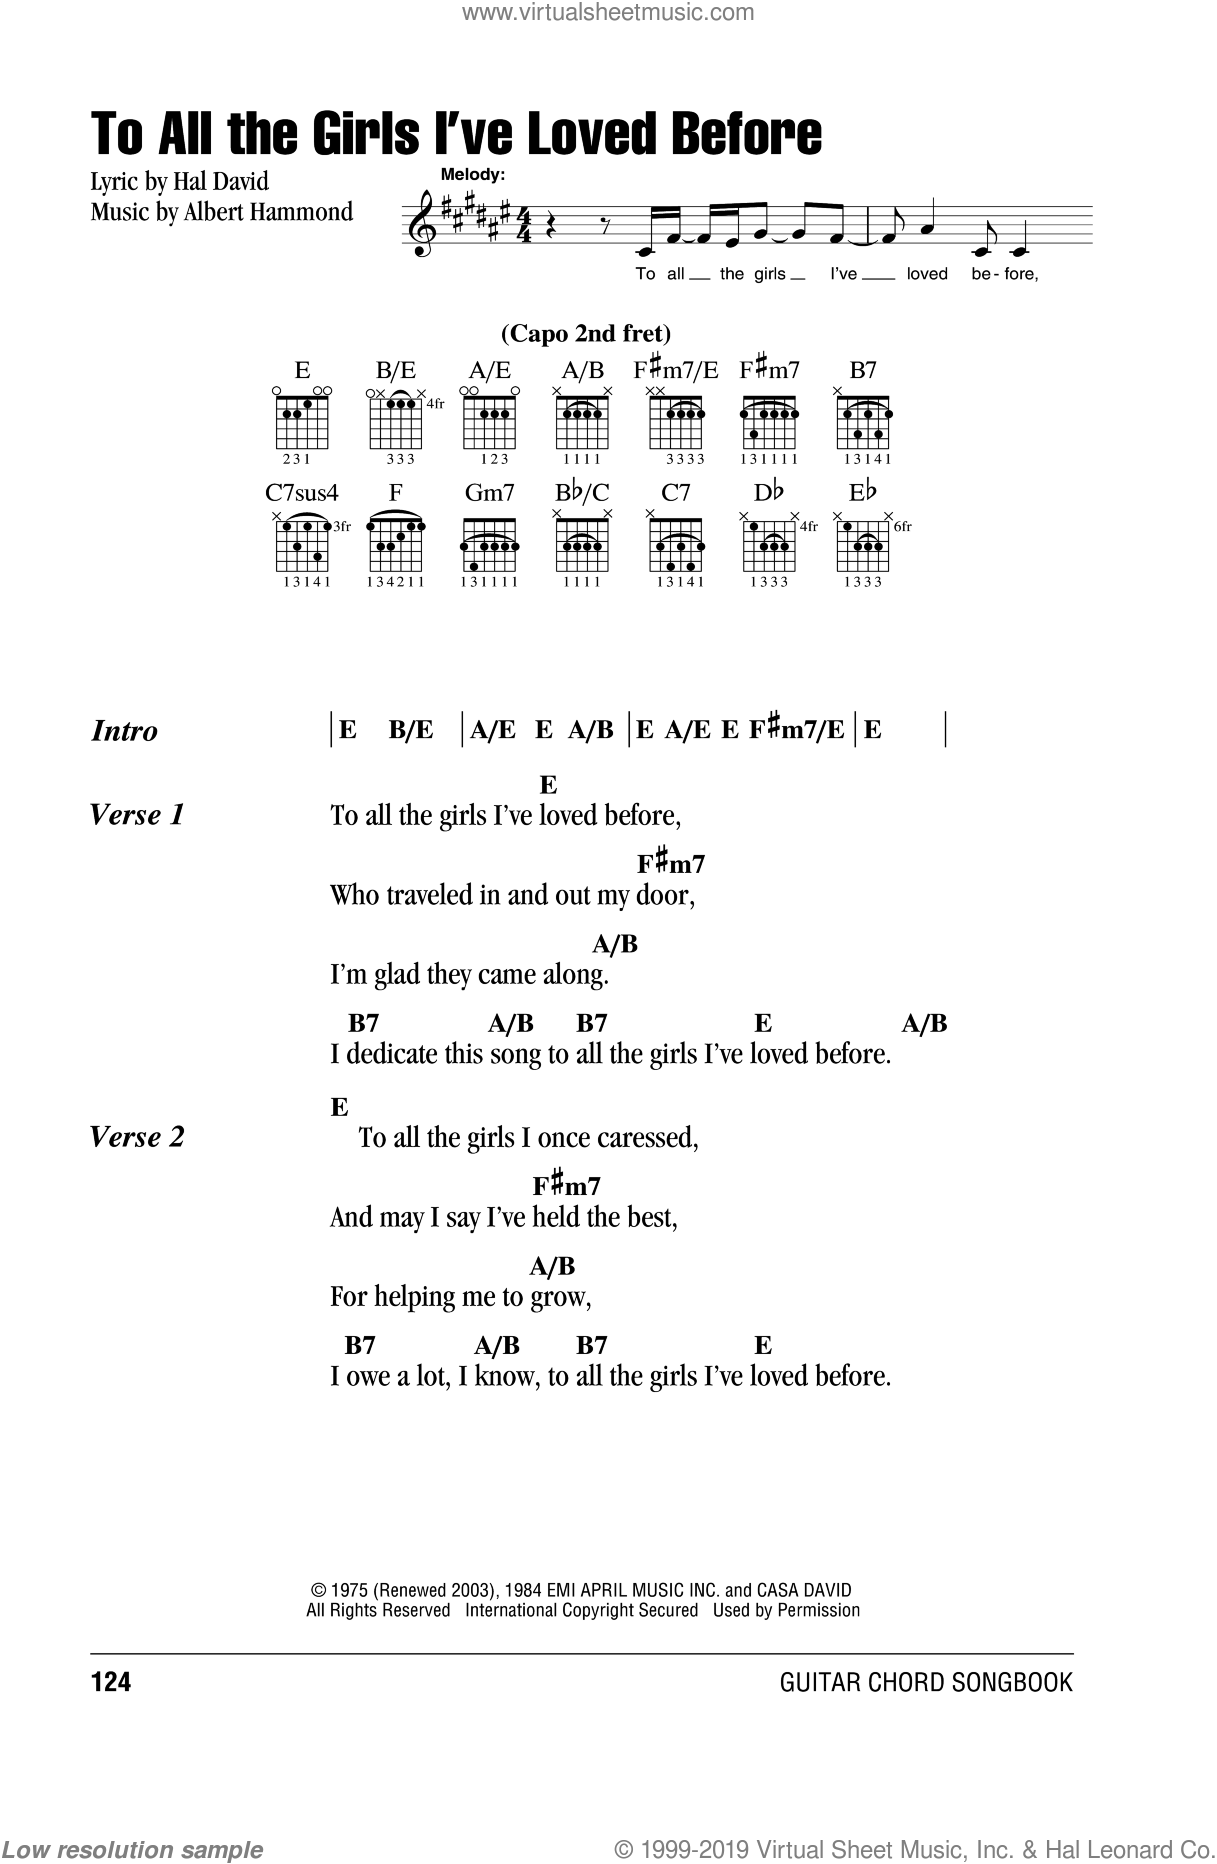 To All The Girls I've Loved Before sheet music for guitar (chords) by Hal David